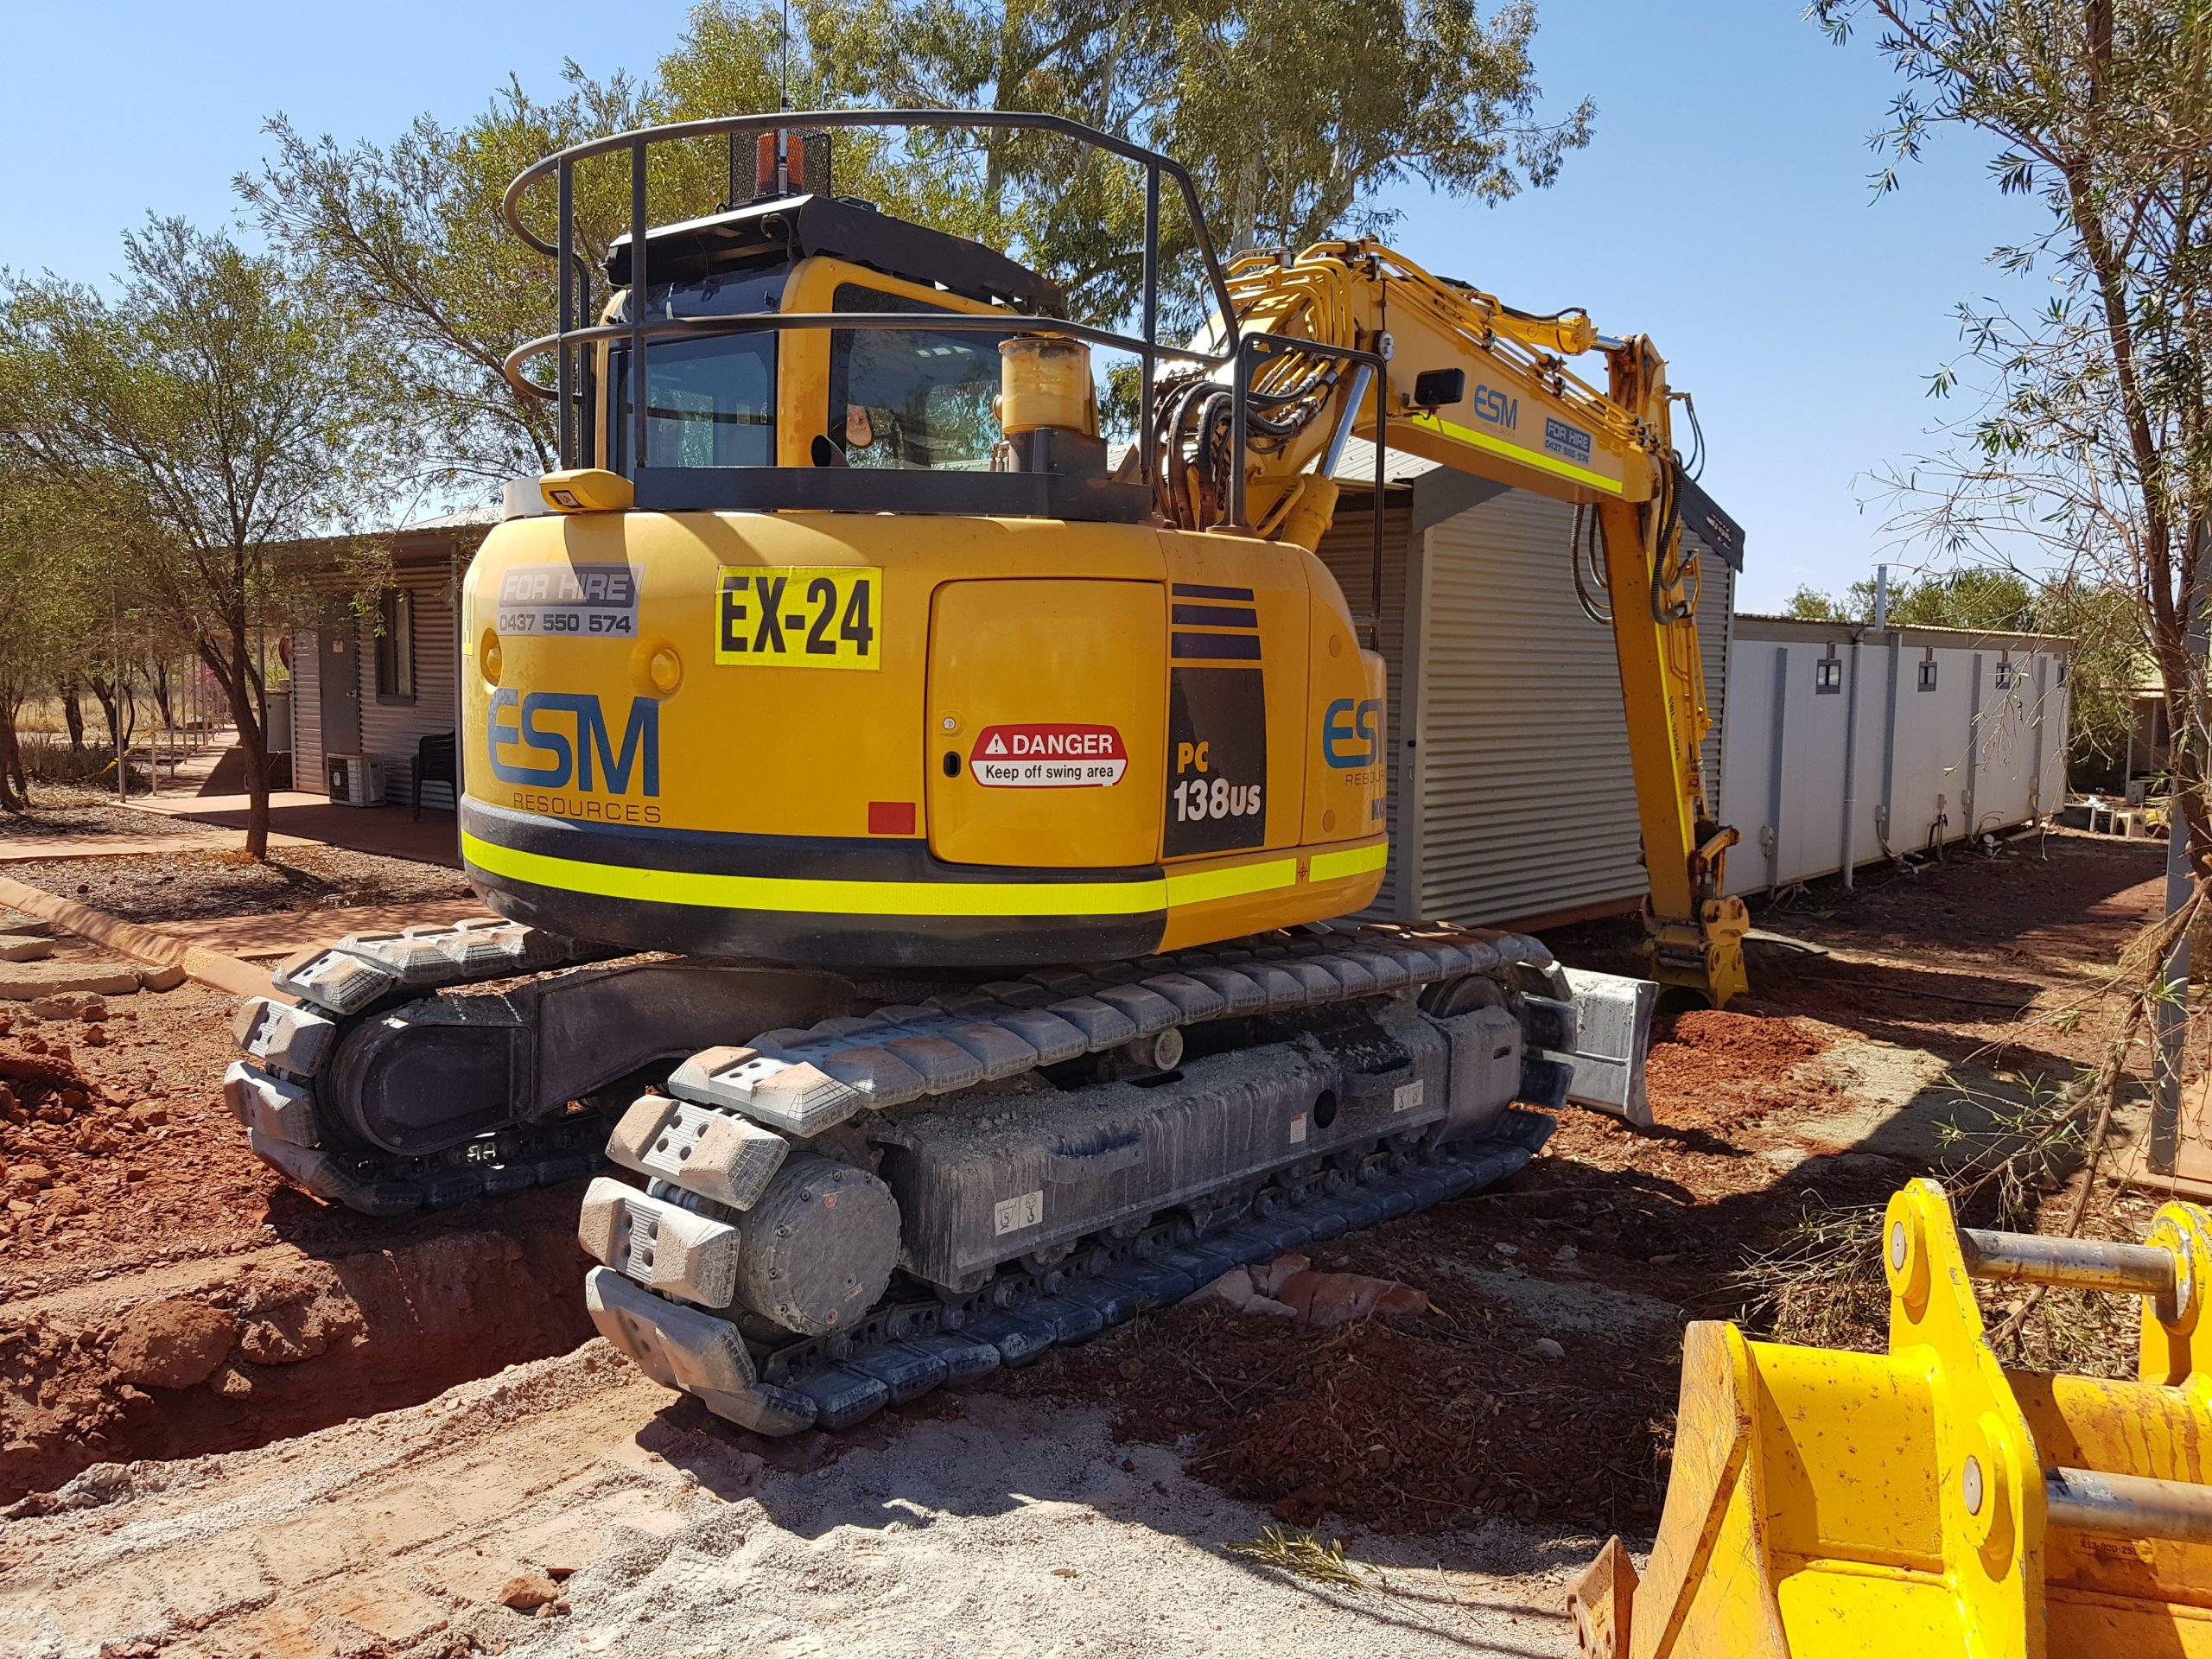 A excavator from ESM Resources working at a mining camp.